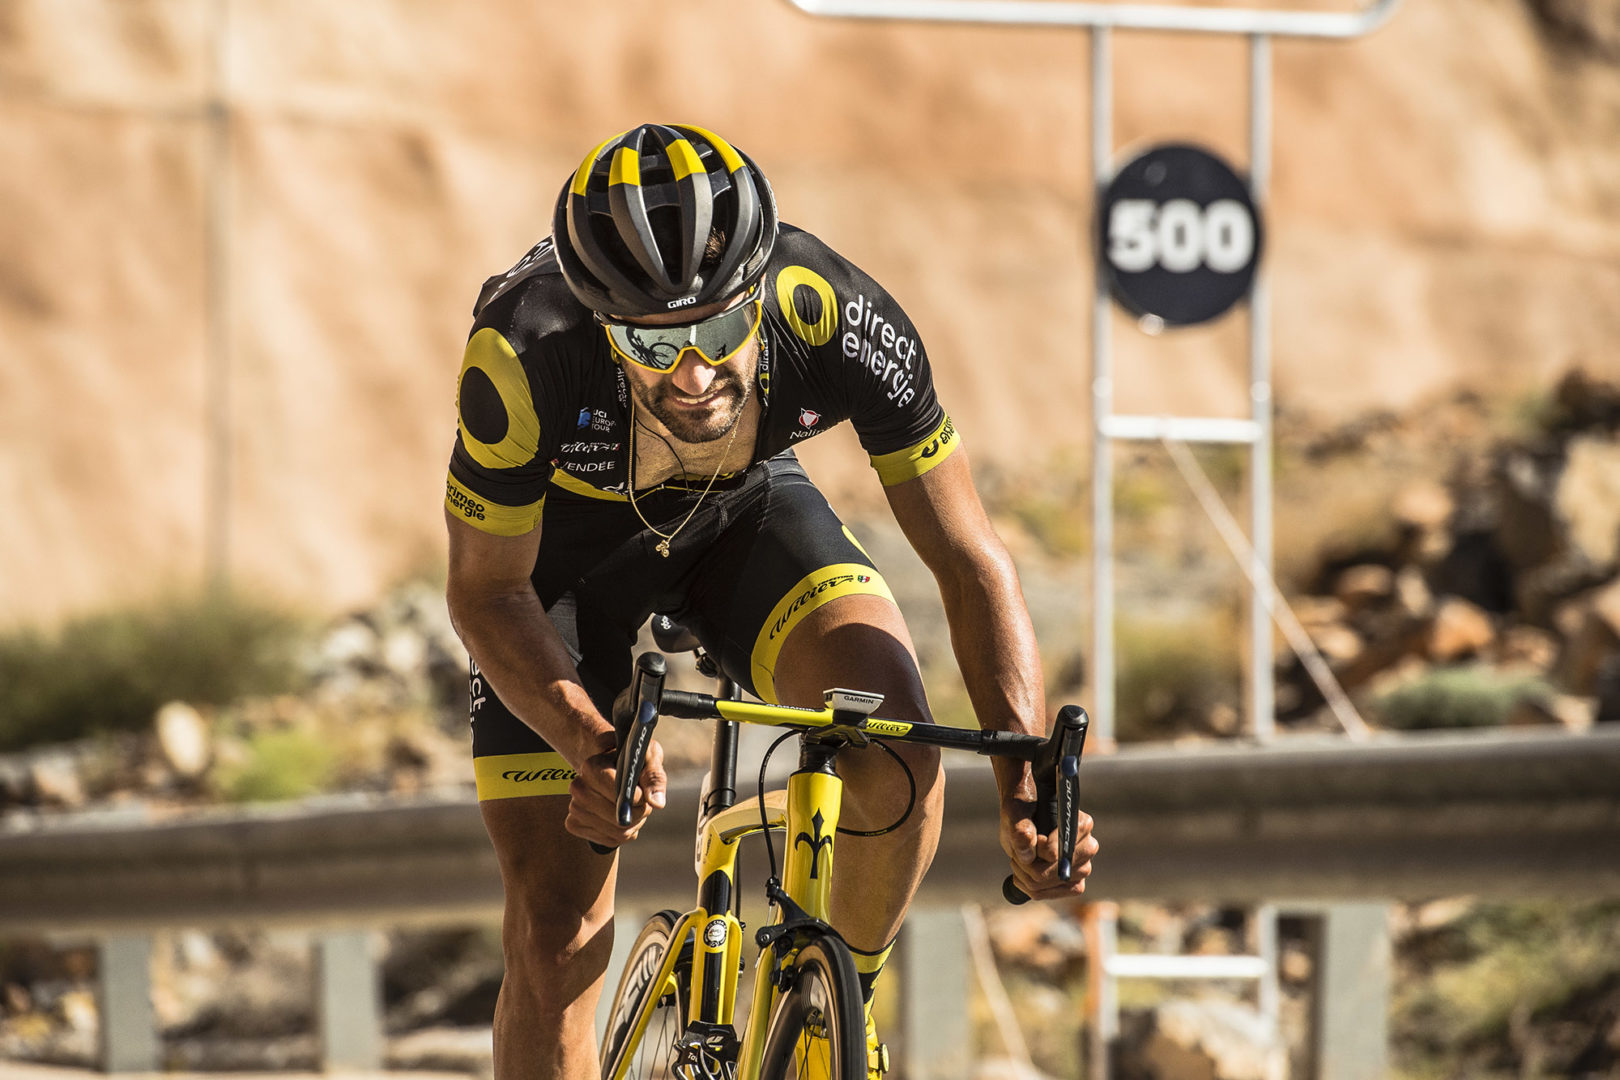 20/02/2019 - Tour of Oman - Stage 5 - Samayil - Jabal Al Akhdhar (Green Mountain) - Fabien Grellier (Direct Energie). Credit: ASO/Kare Dehlie Thorstad